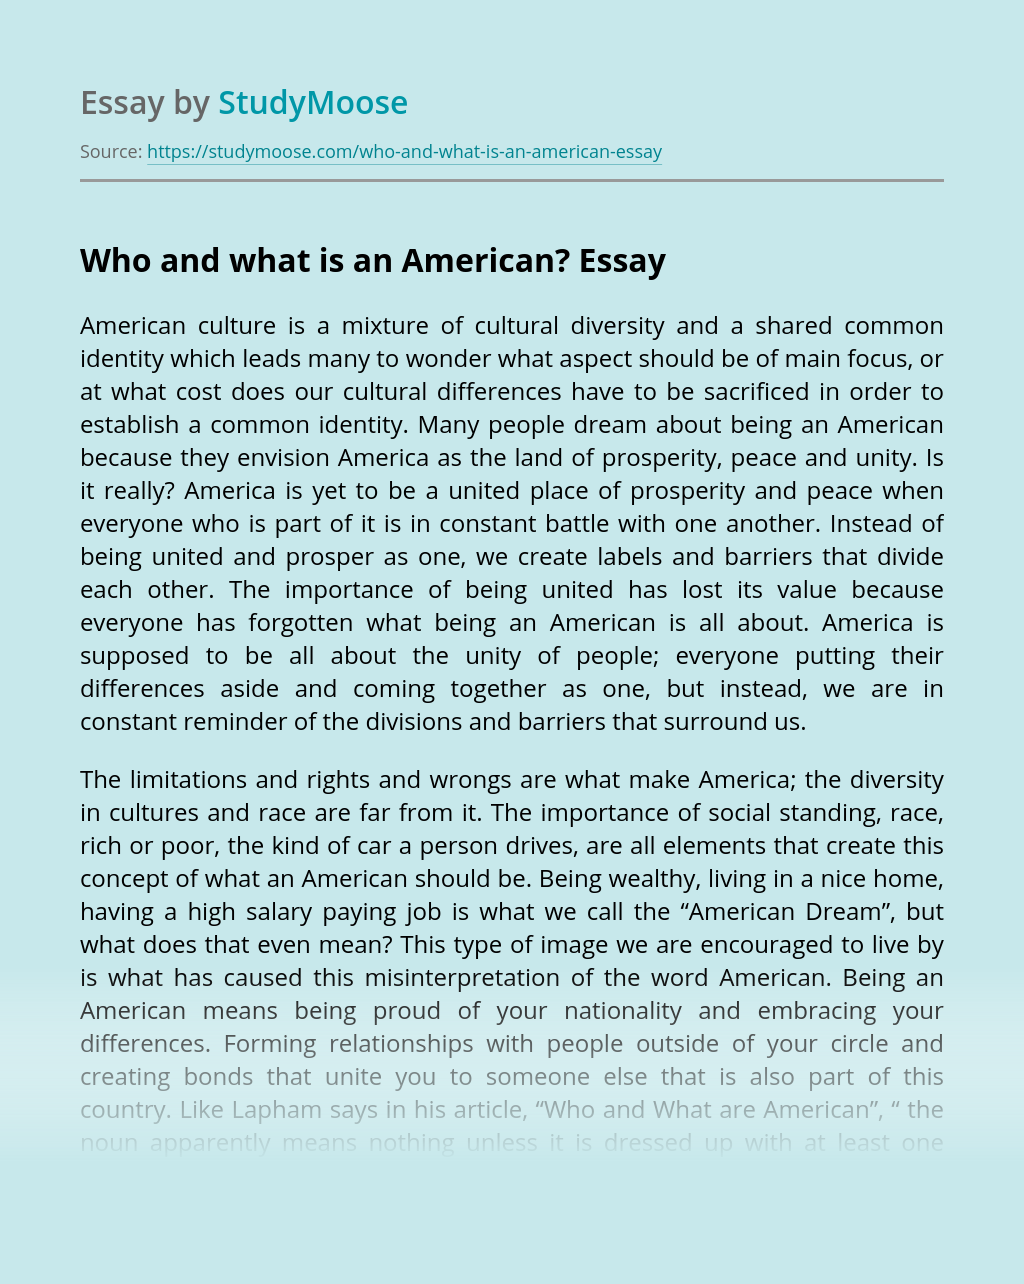 Who and what is an American?